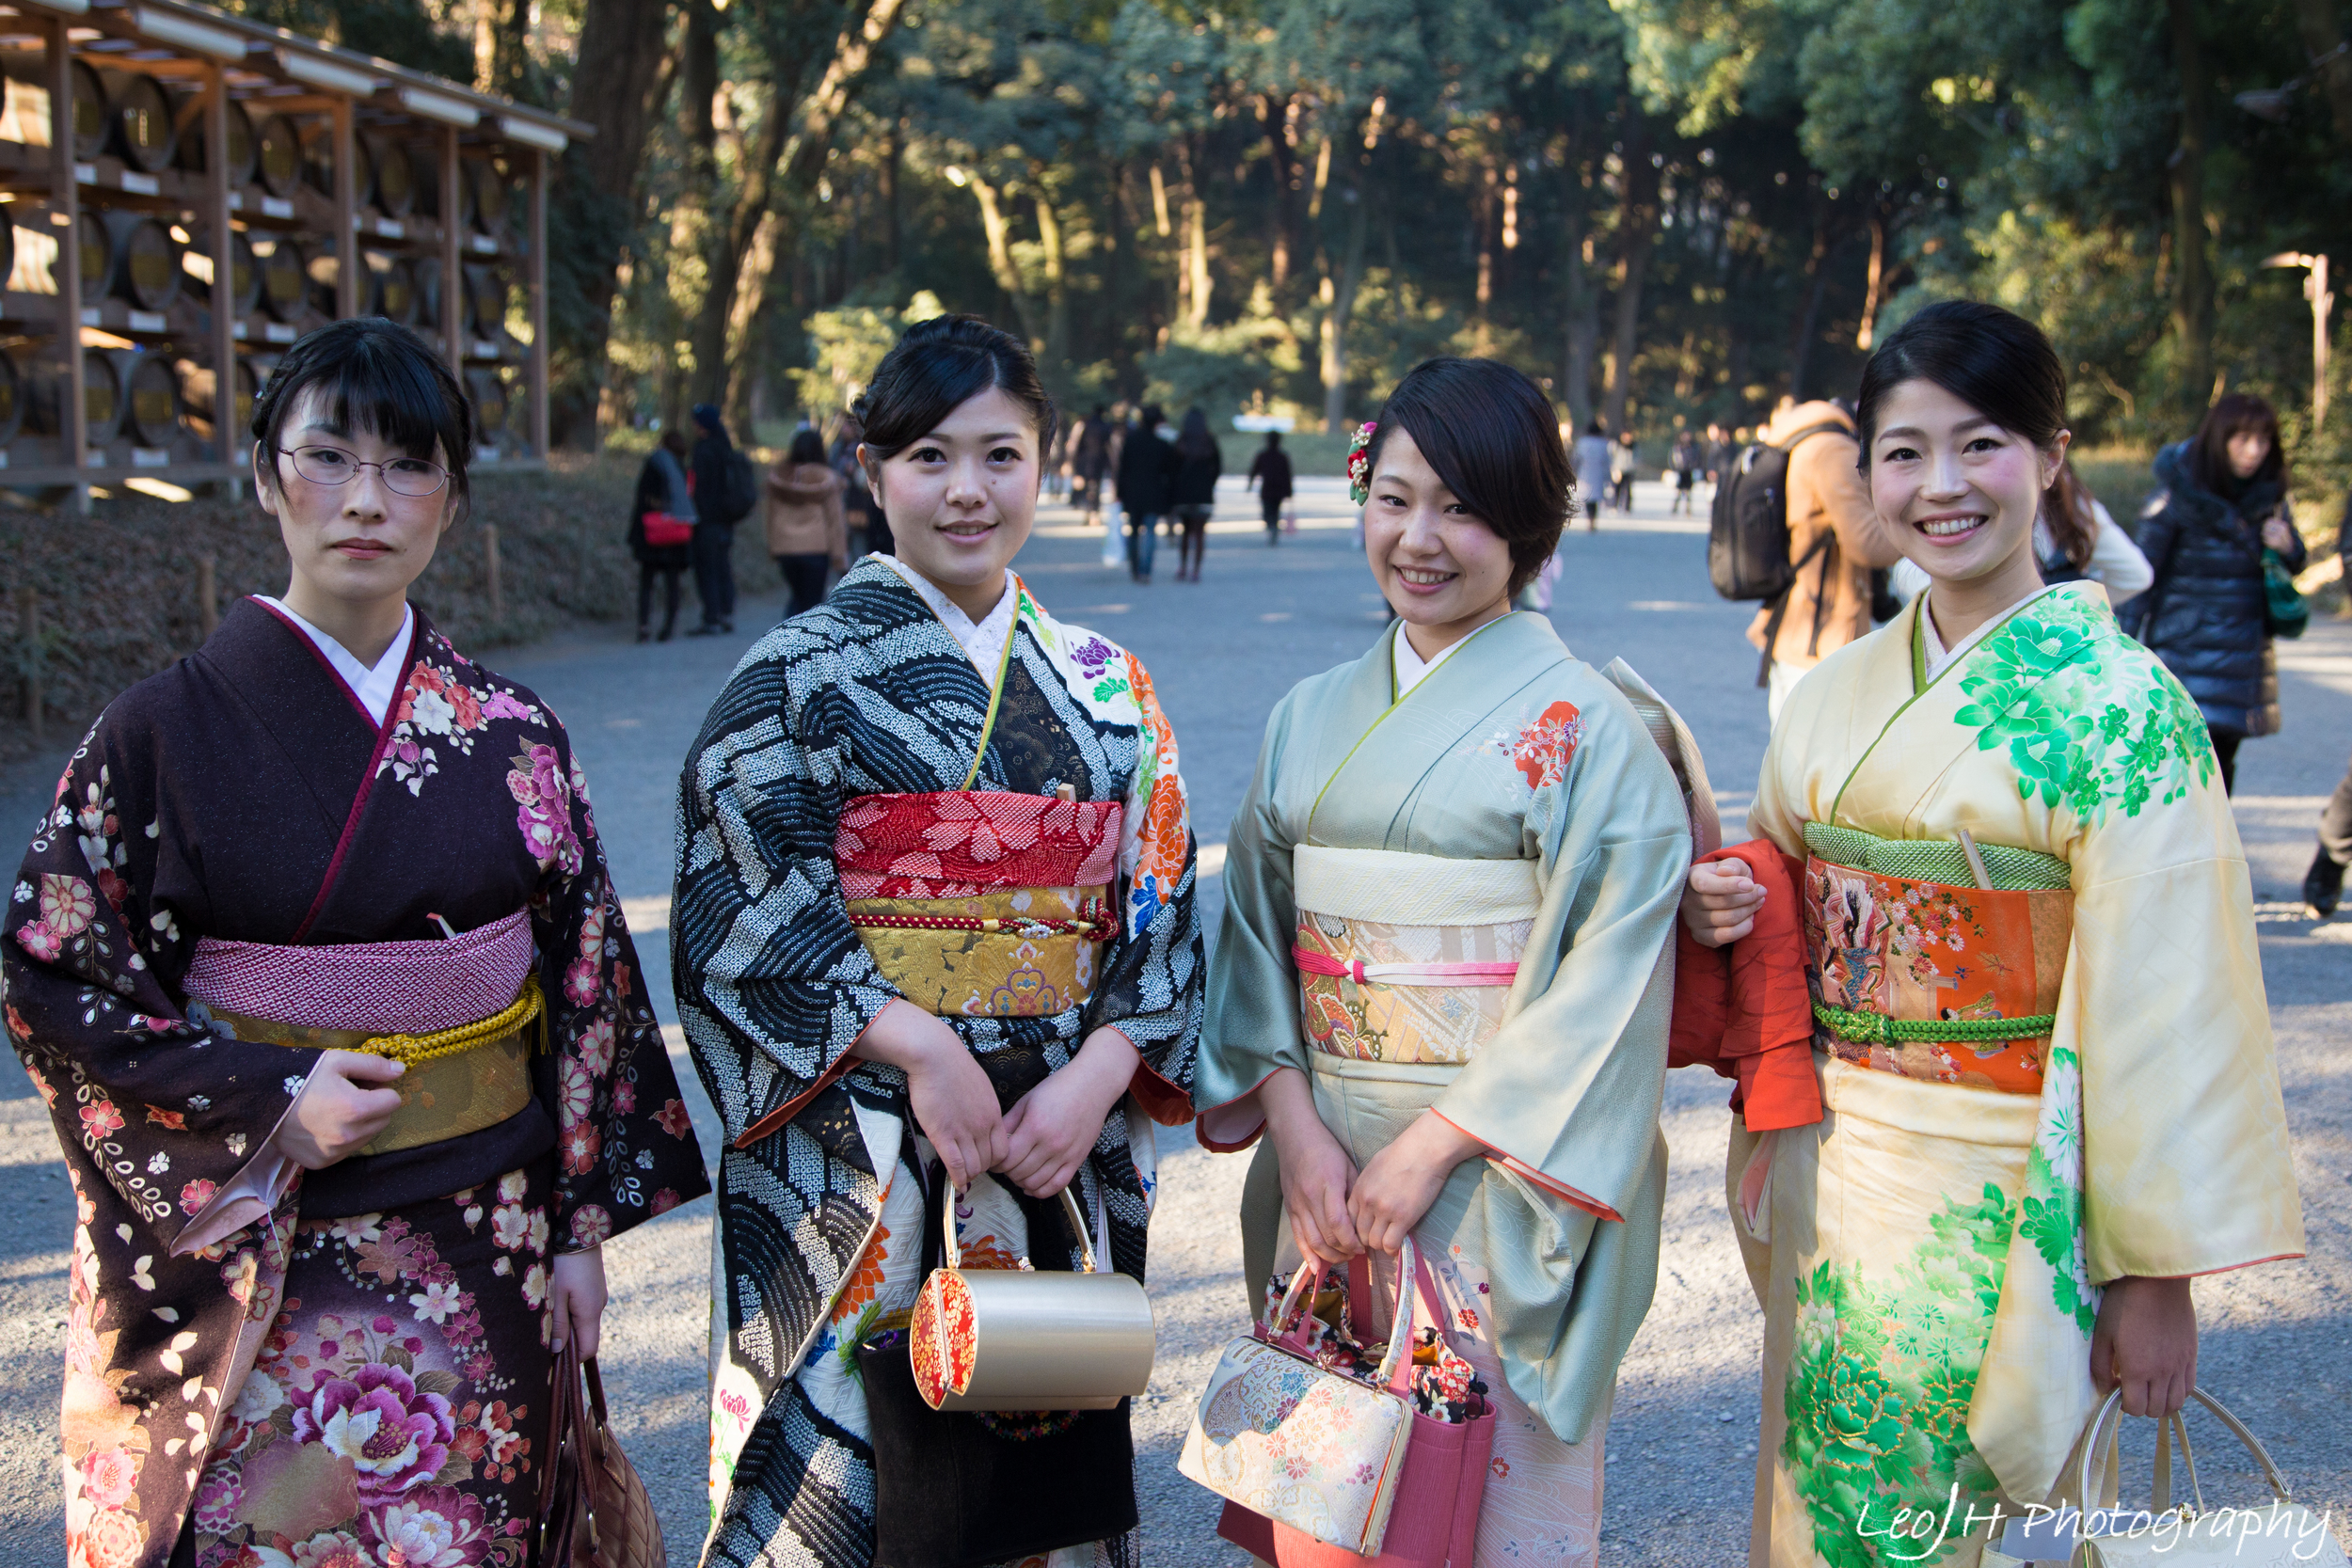 A group of ladies in traditional outfits spotted on the way to the shrine